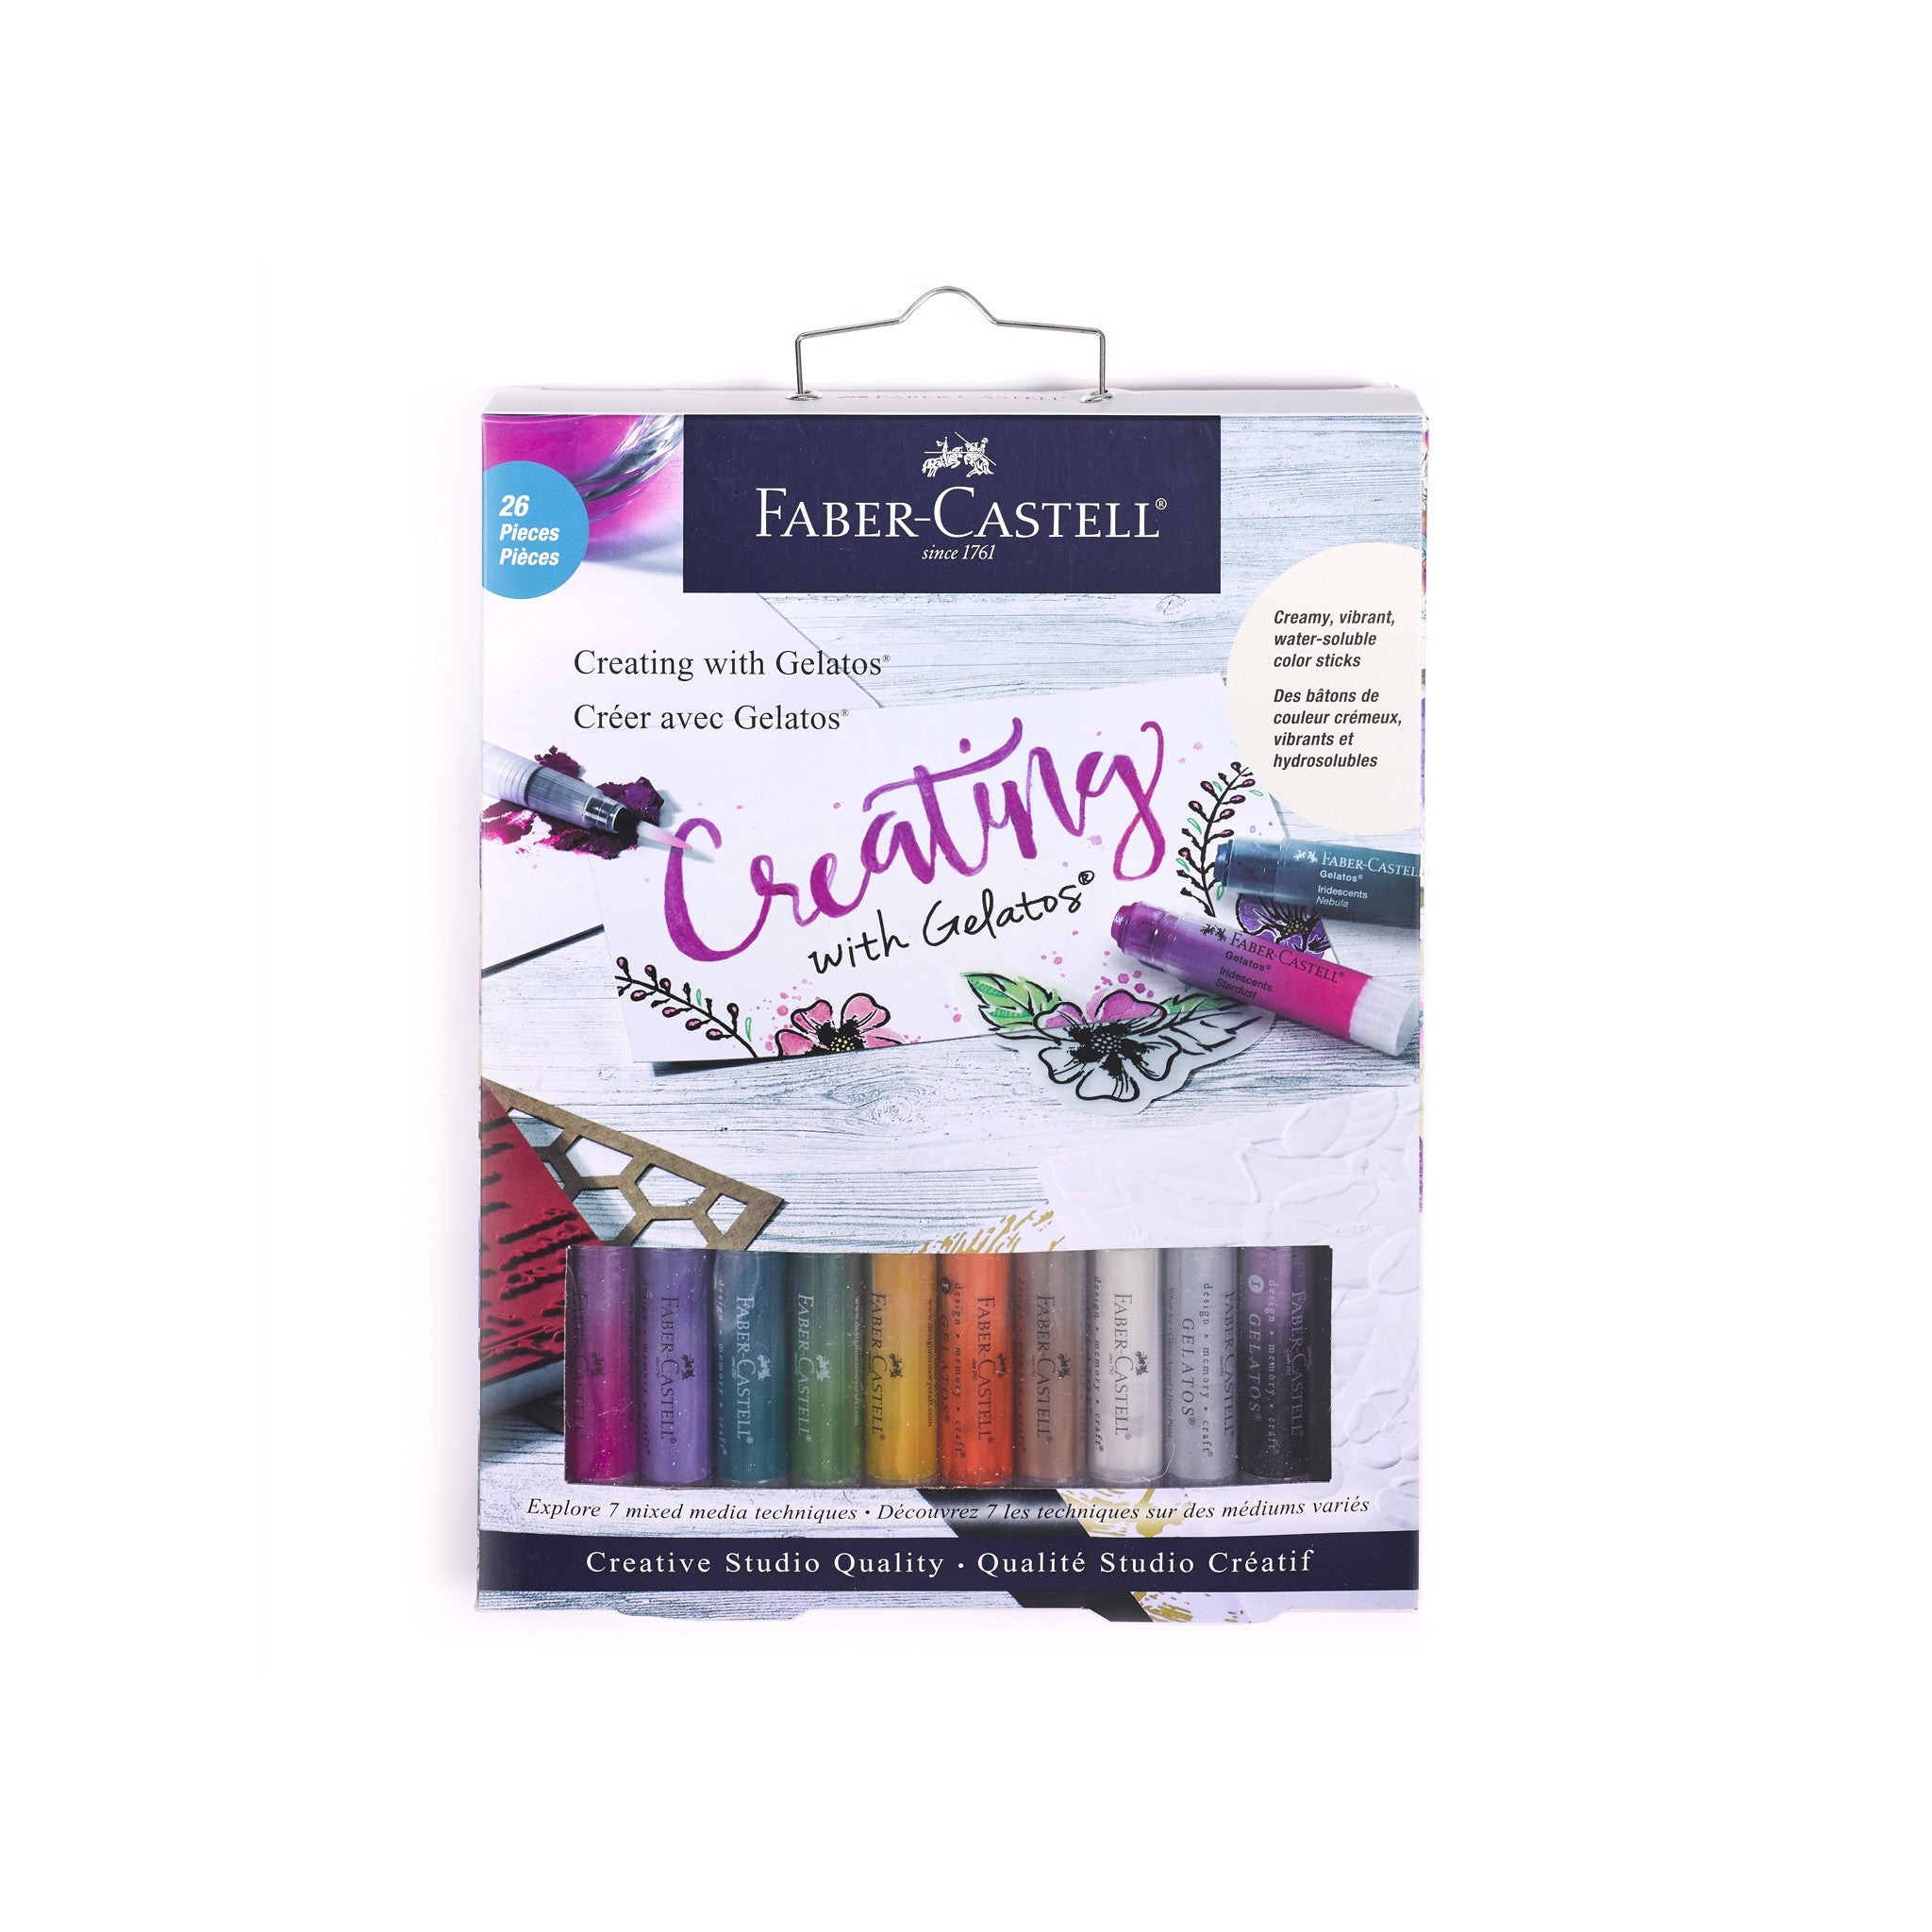 Creating with Gelatos® - #10T – Faber-Castell USA